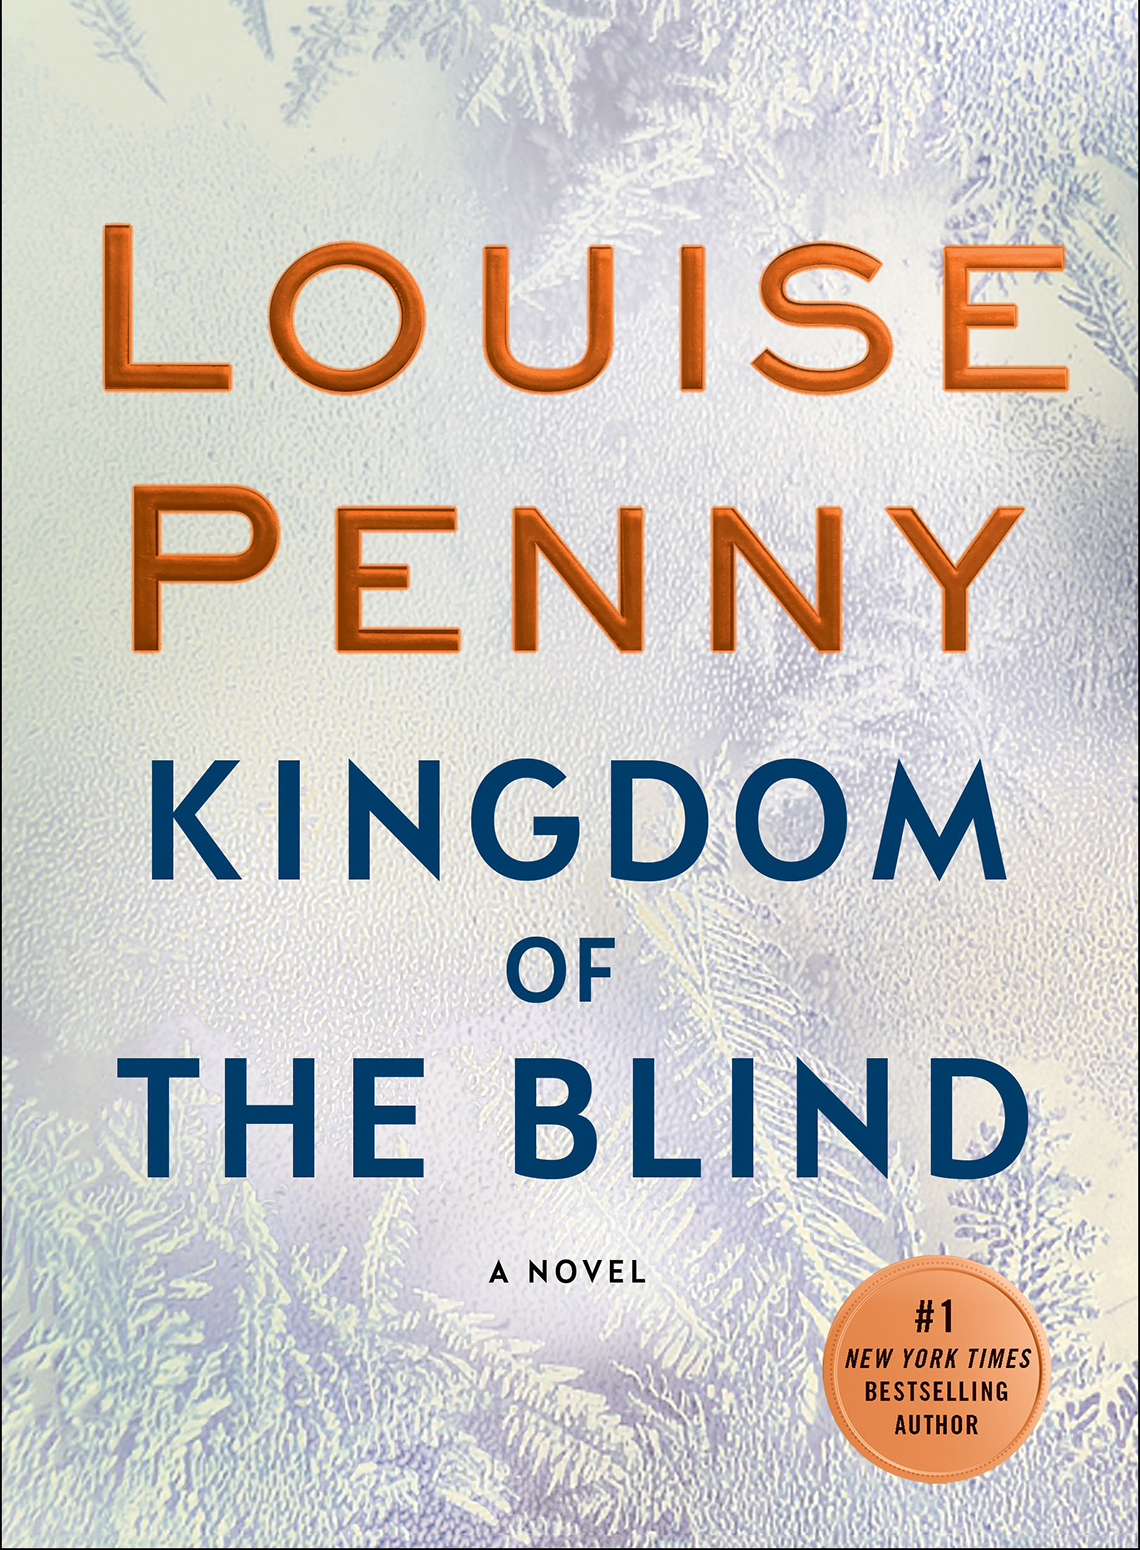 Book cover reads:  Louise Penny, Kingdom of the Blind